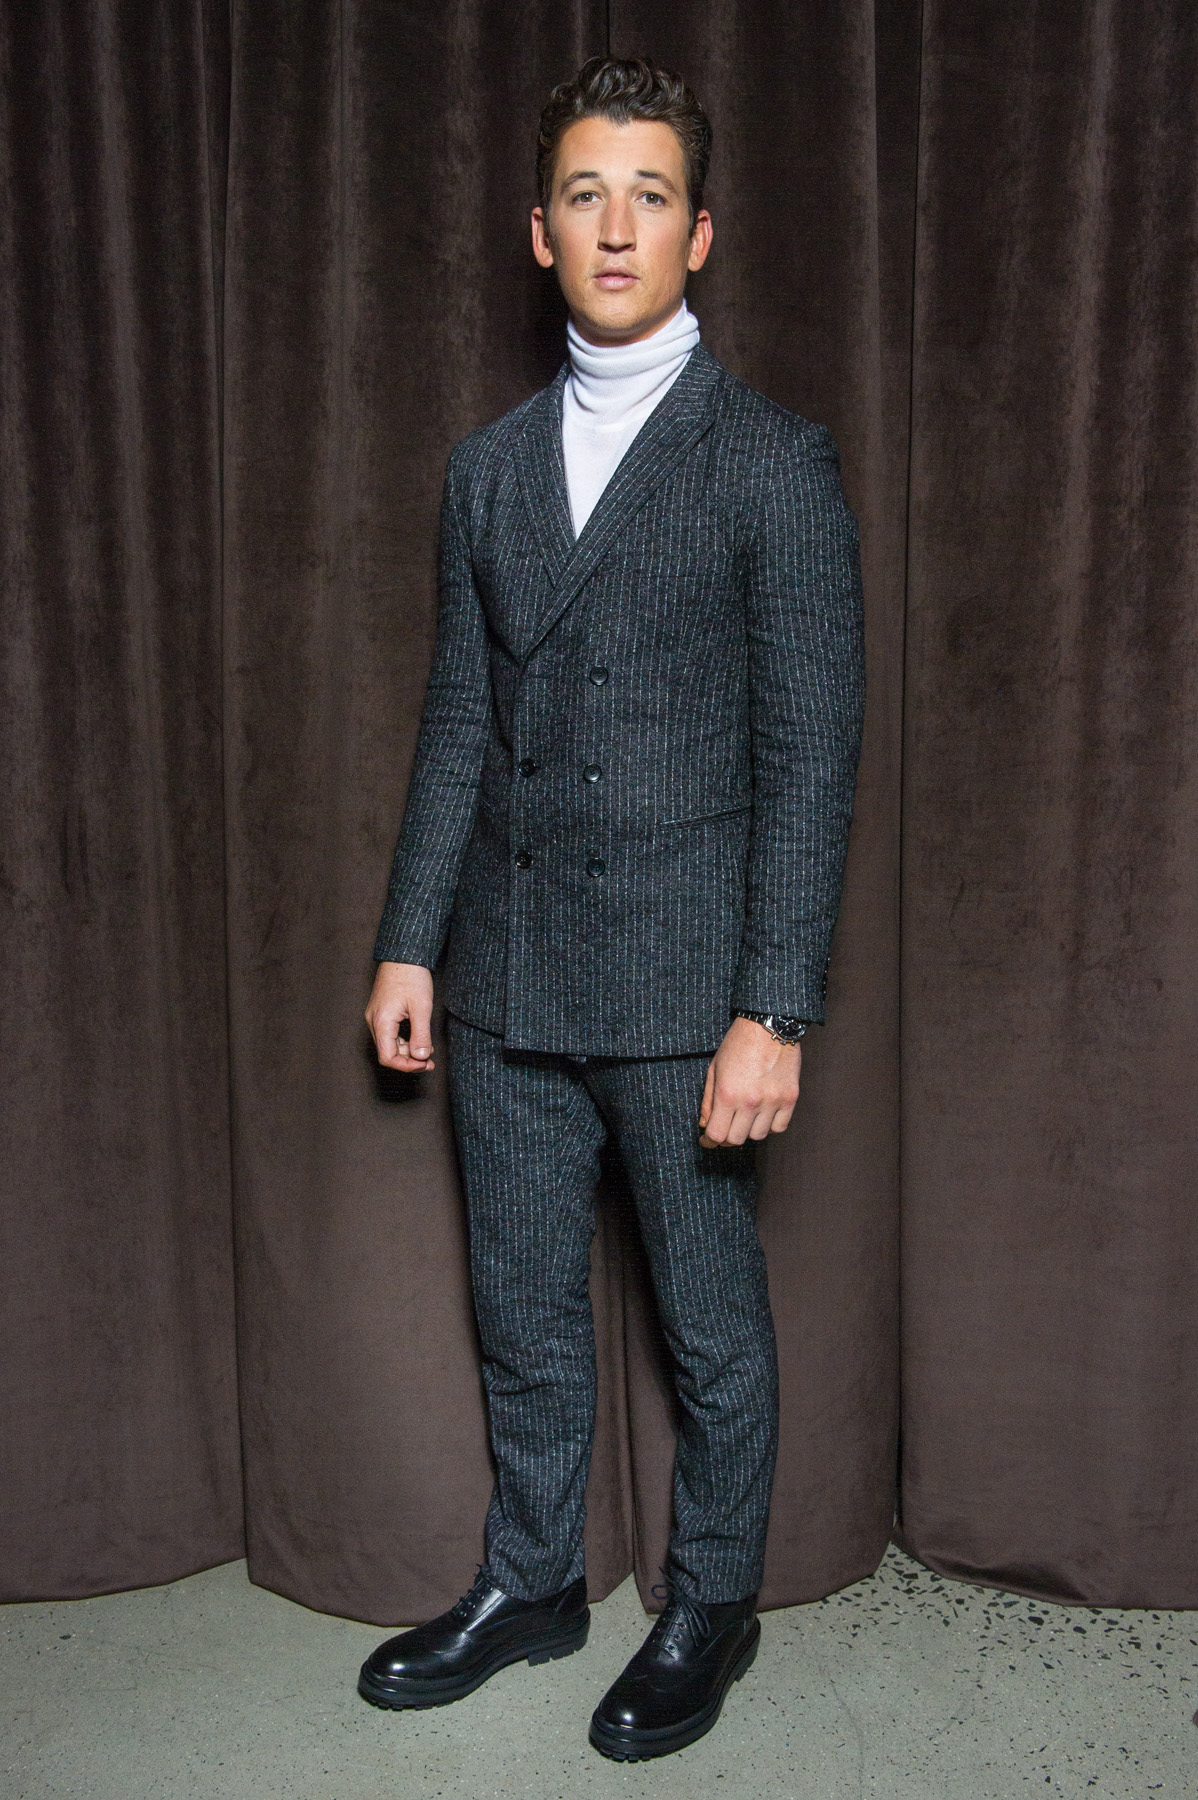 Miles Teller in HUGO BOSS at the BOSS Menswear Fall/Winter 2017 collection presentation